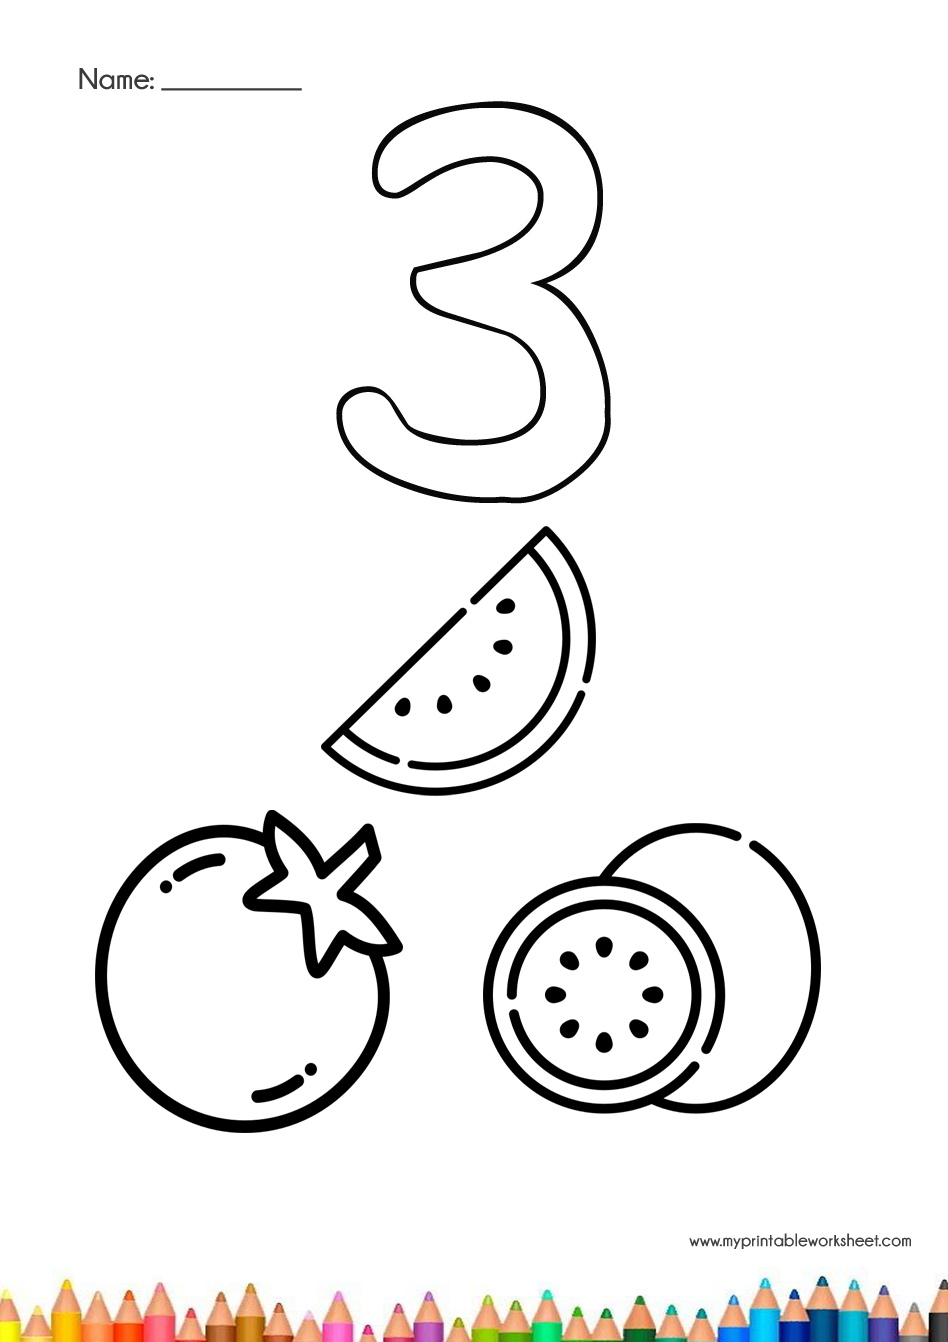 Free Printable Number Coloring Pages For Kids | Numbers preschool ... | 1342x948